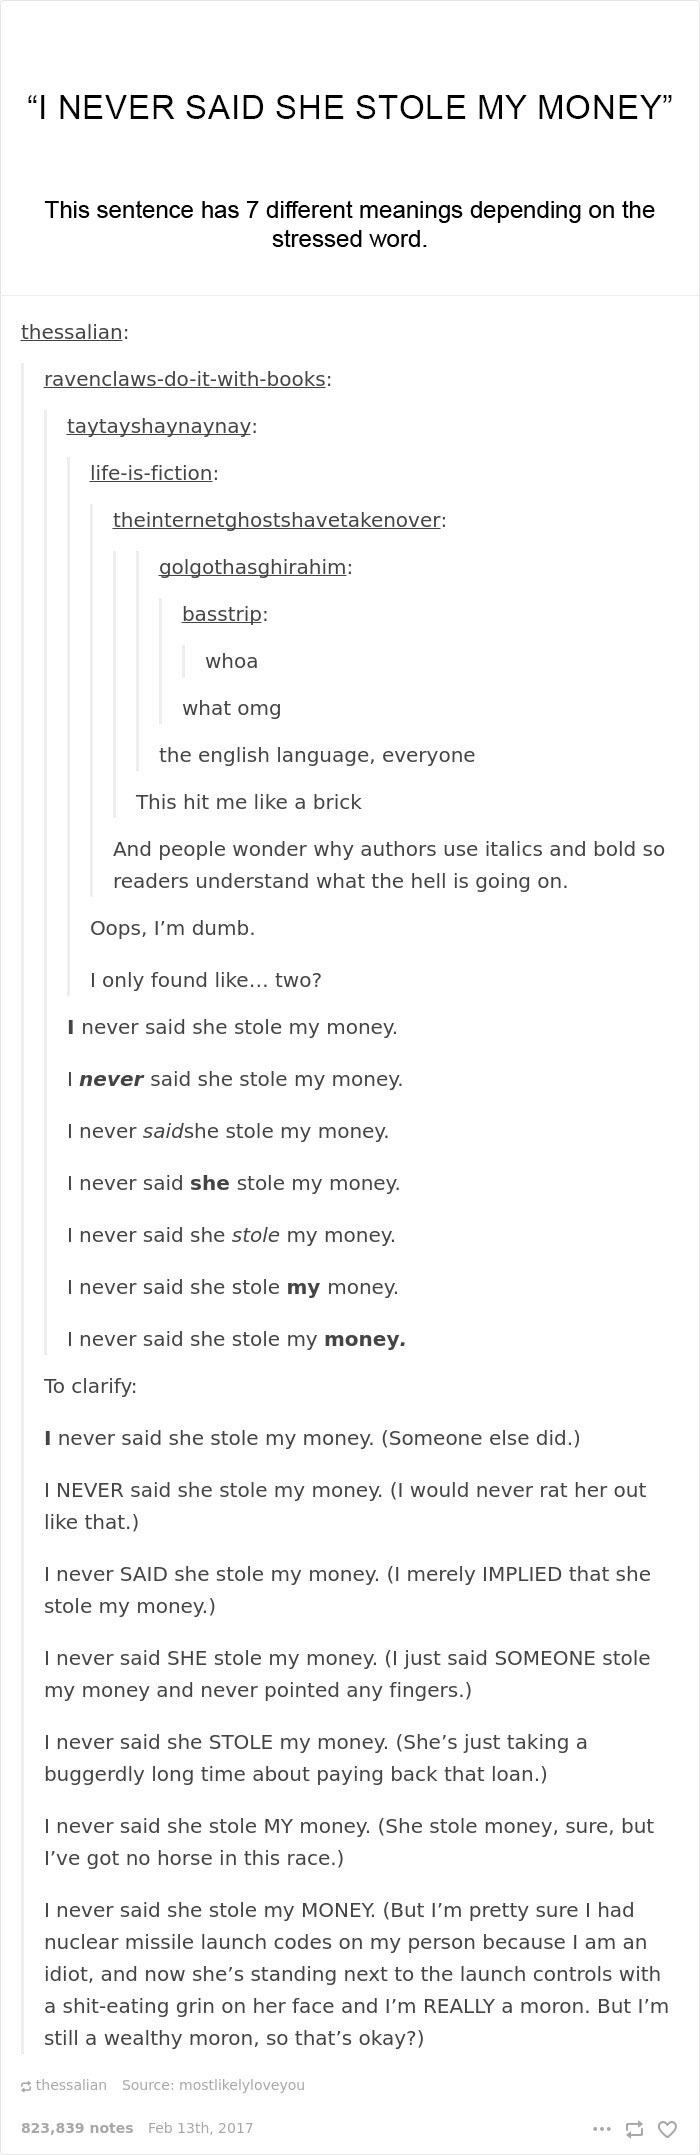 funny-english-language-jokes-13